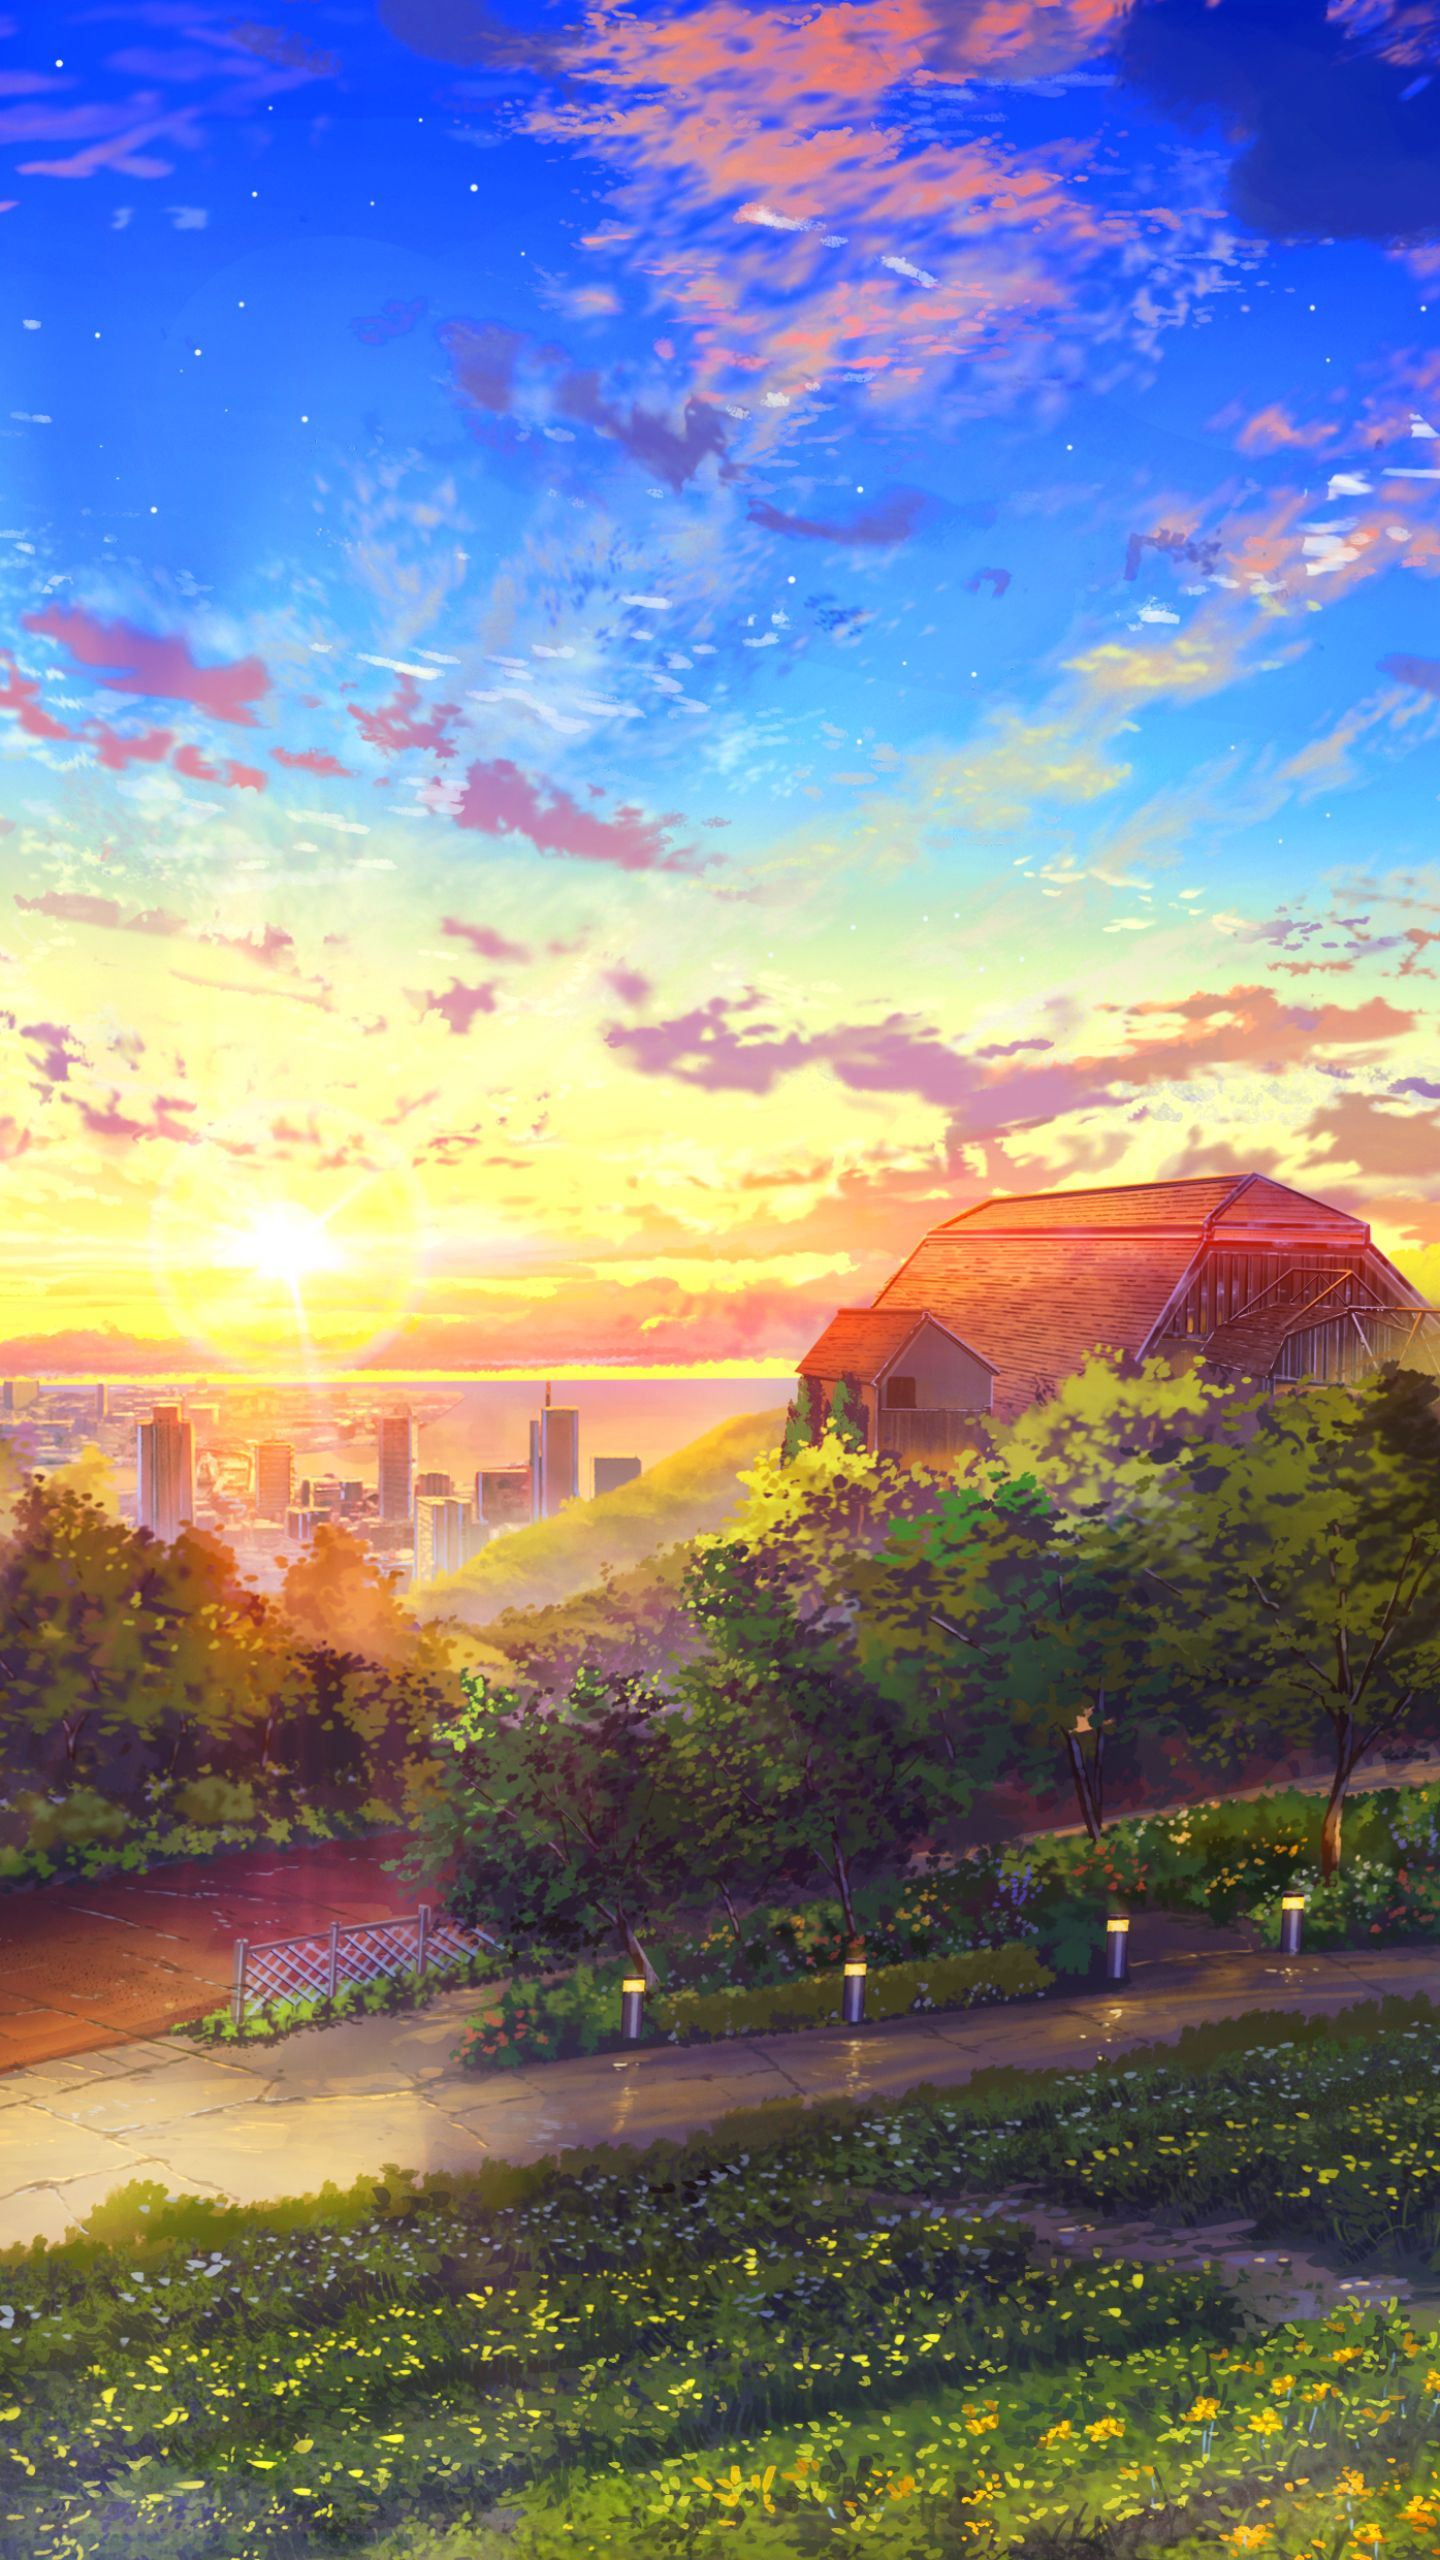 Anime Landscape Wallpaper Phone Anime Landscape 1440x2560 Wallpaper Id 793667 Mobile Abyss Anime Scener In 2020 Scenery Wallpaper Anime Scenery Anime Wallpaper Phone